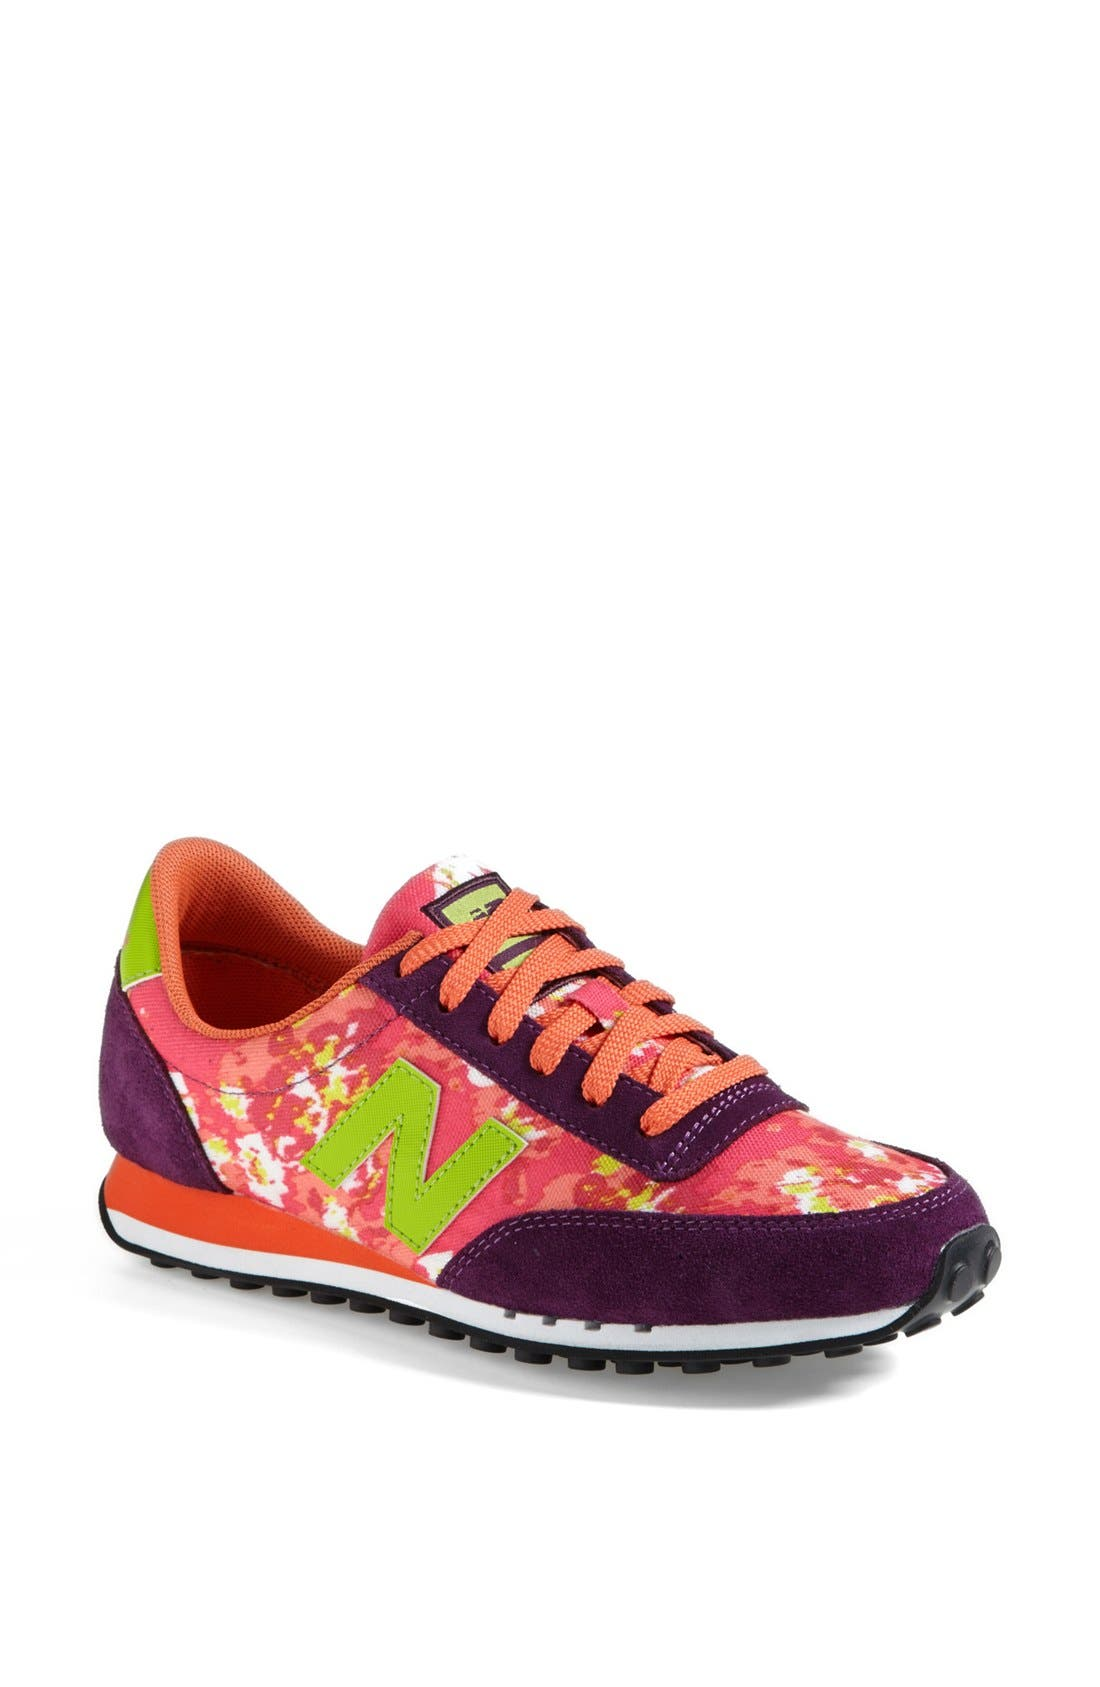 Alternate Image 1 Selected - New Balance '410 Floral Blur' Sneaker (Women)